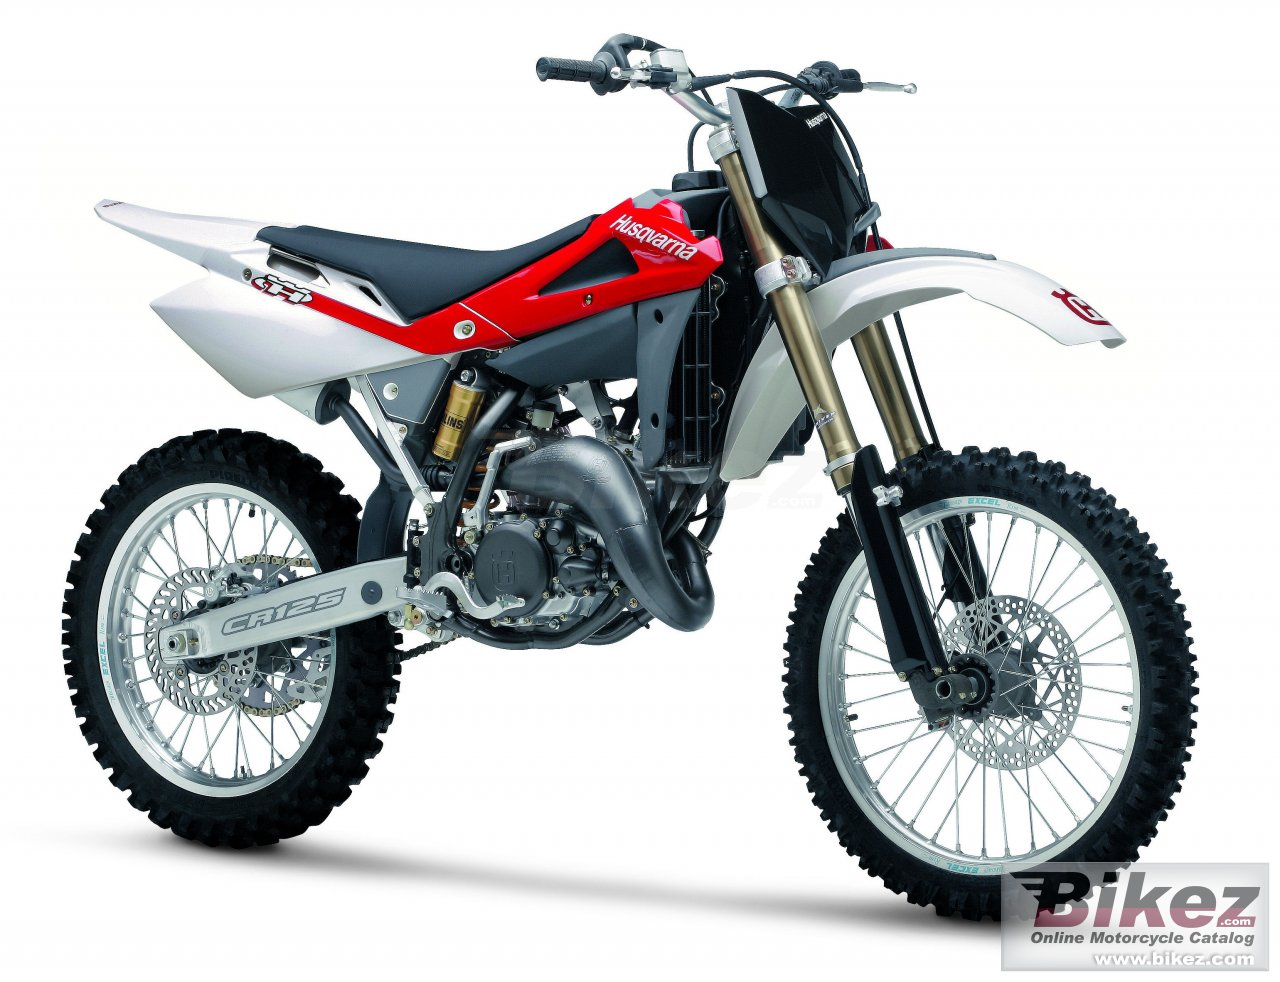 Big Husqvarna cr 125 picture and wallpaper from Bikez.com